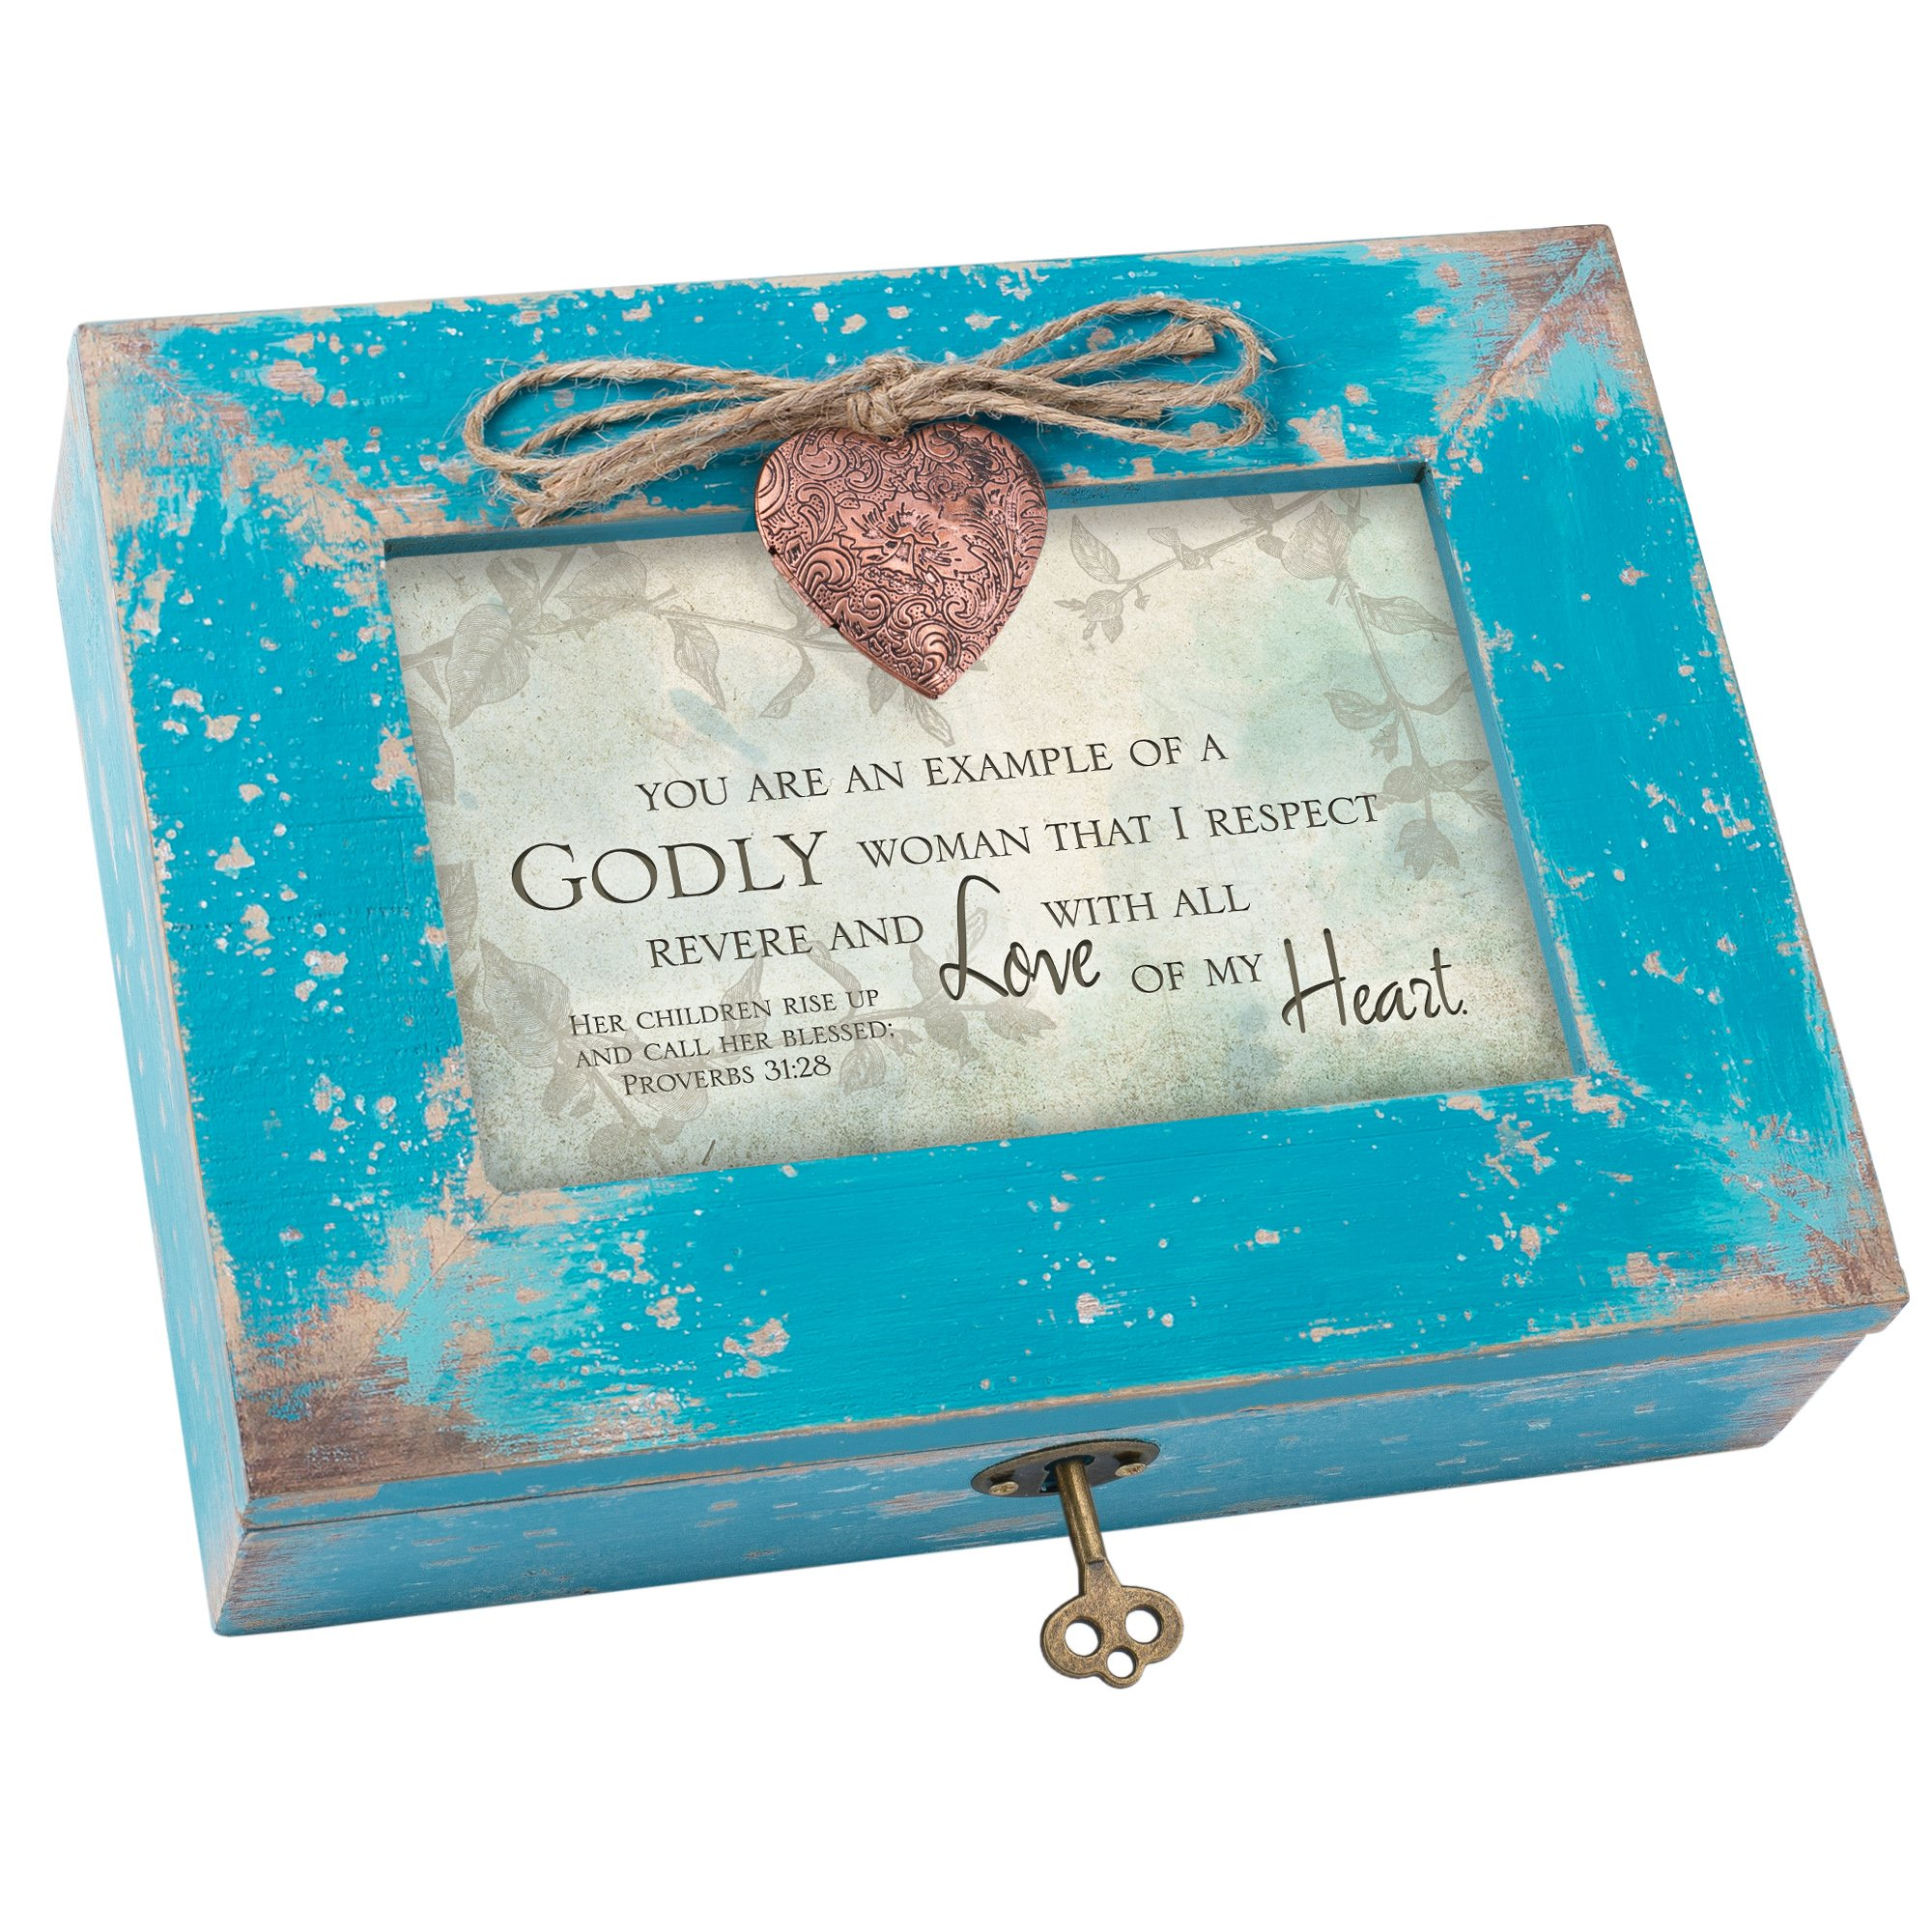 Cottage Garden Godly Woman I Respect and Love Teal Wood Locket Jewelry Music Box Plays Tune Amazing Grace